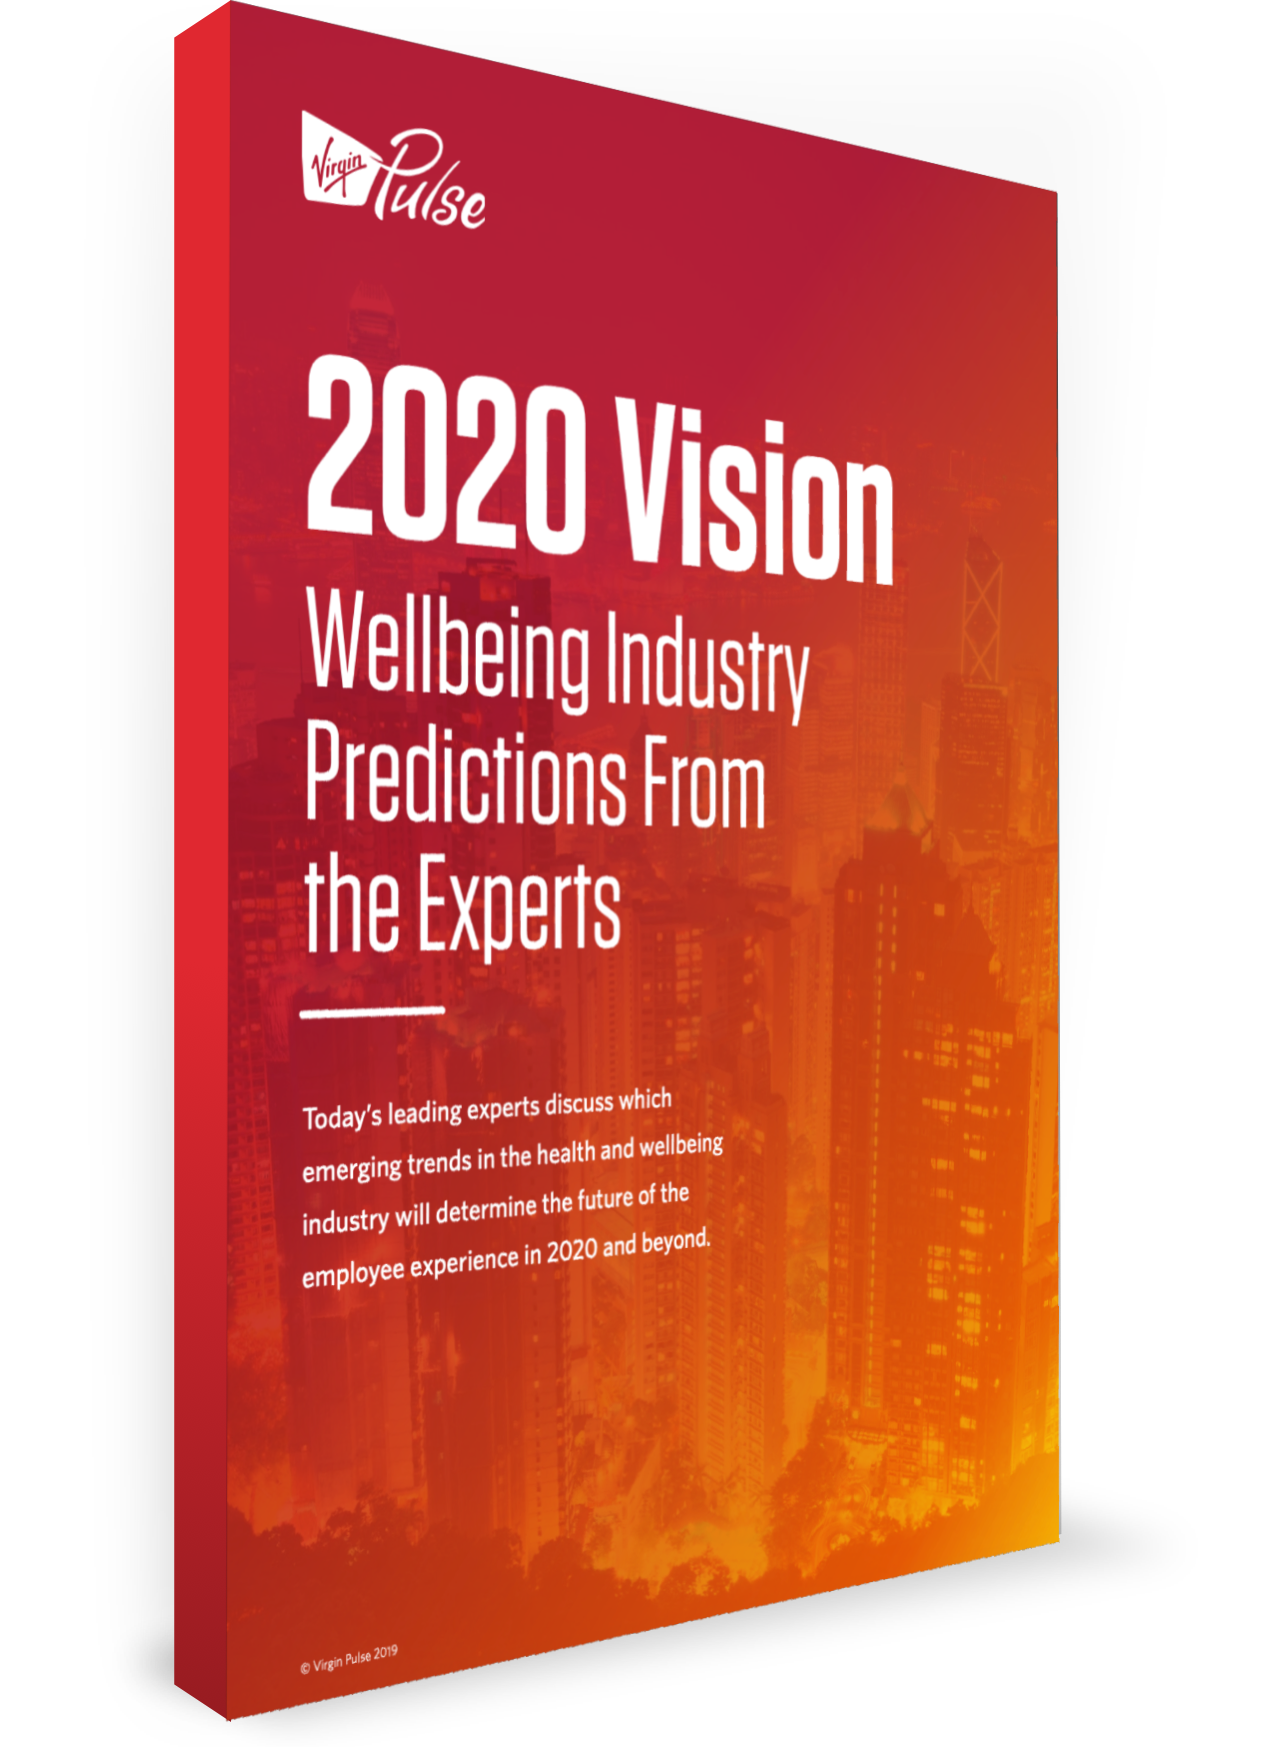 2020 wellbeing predictions book image